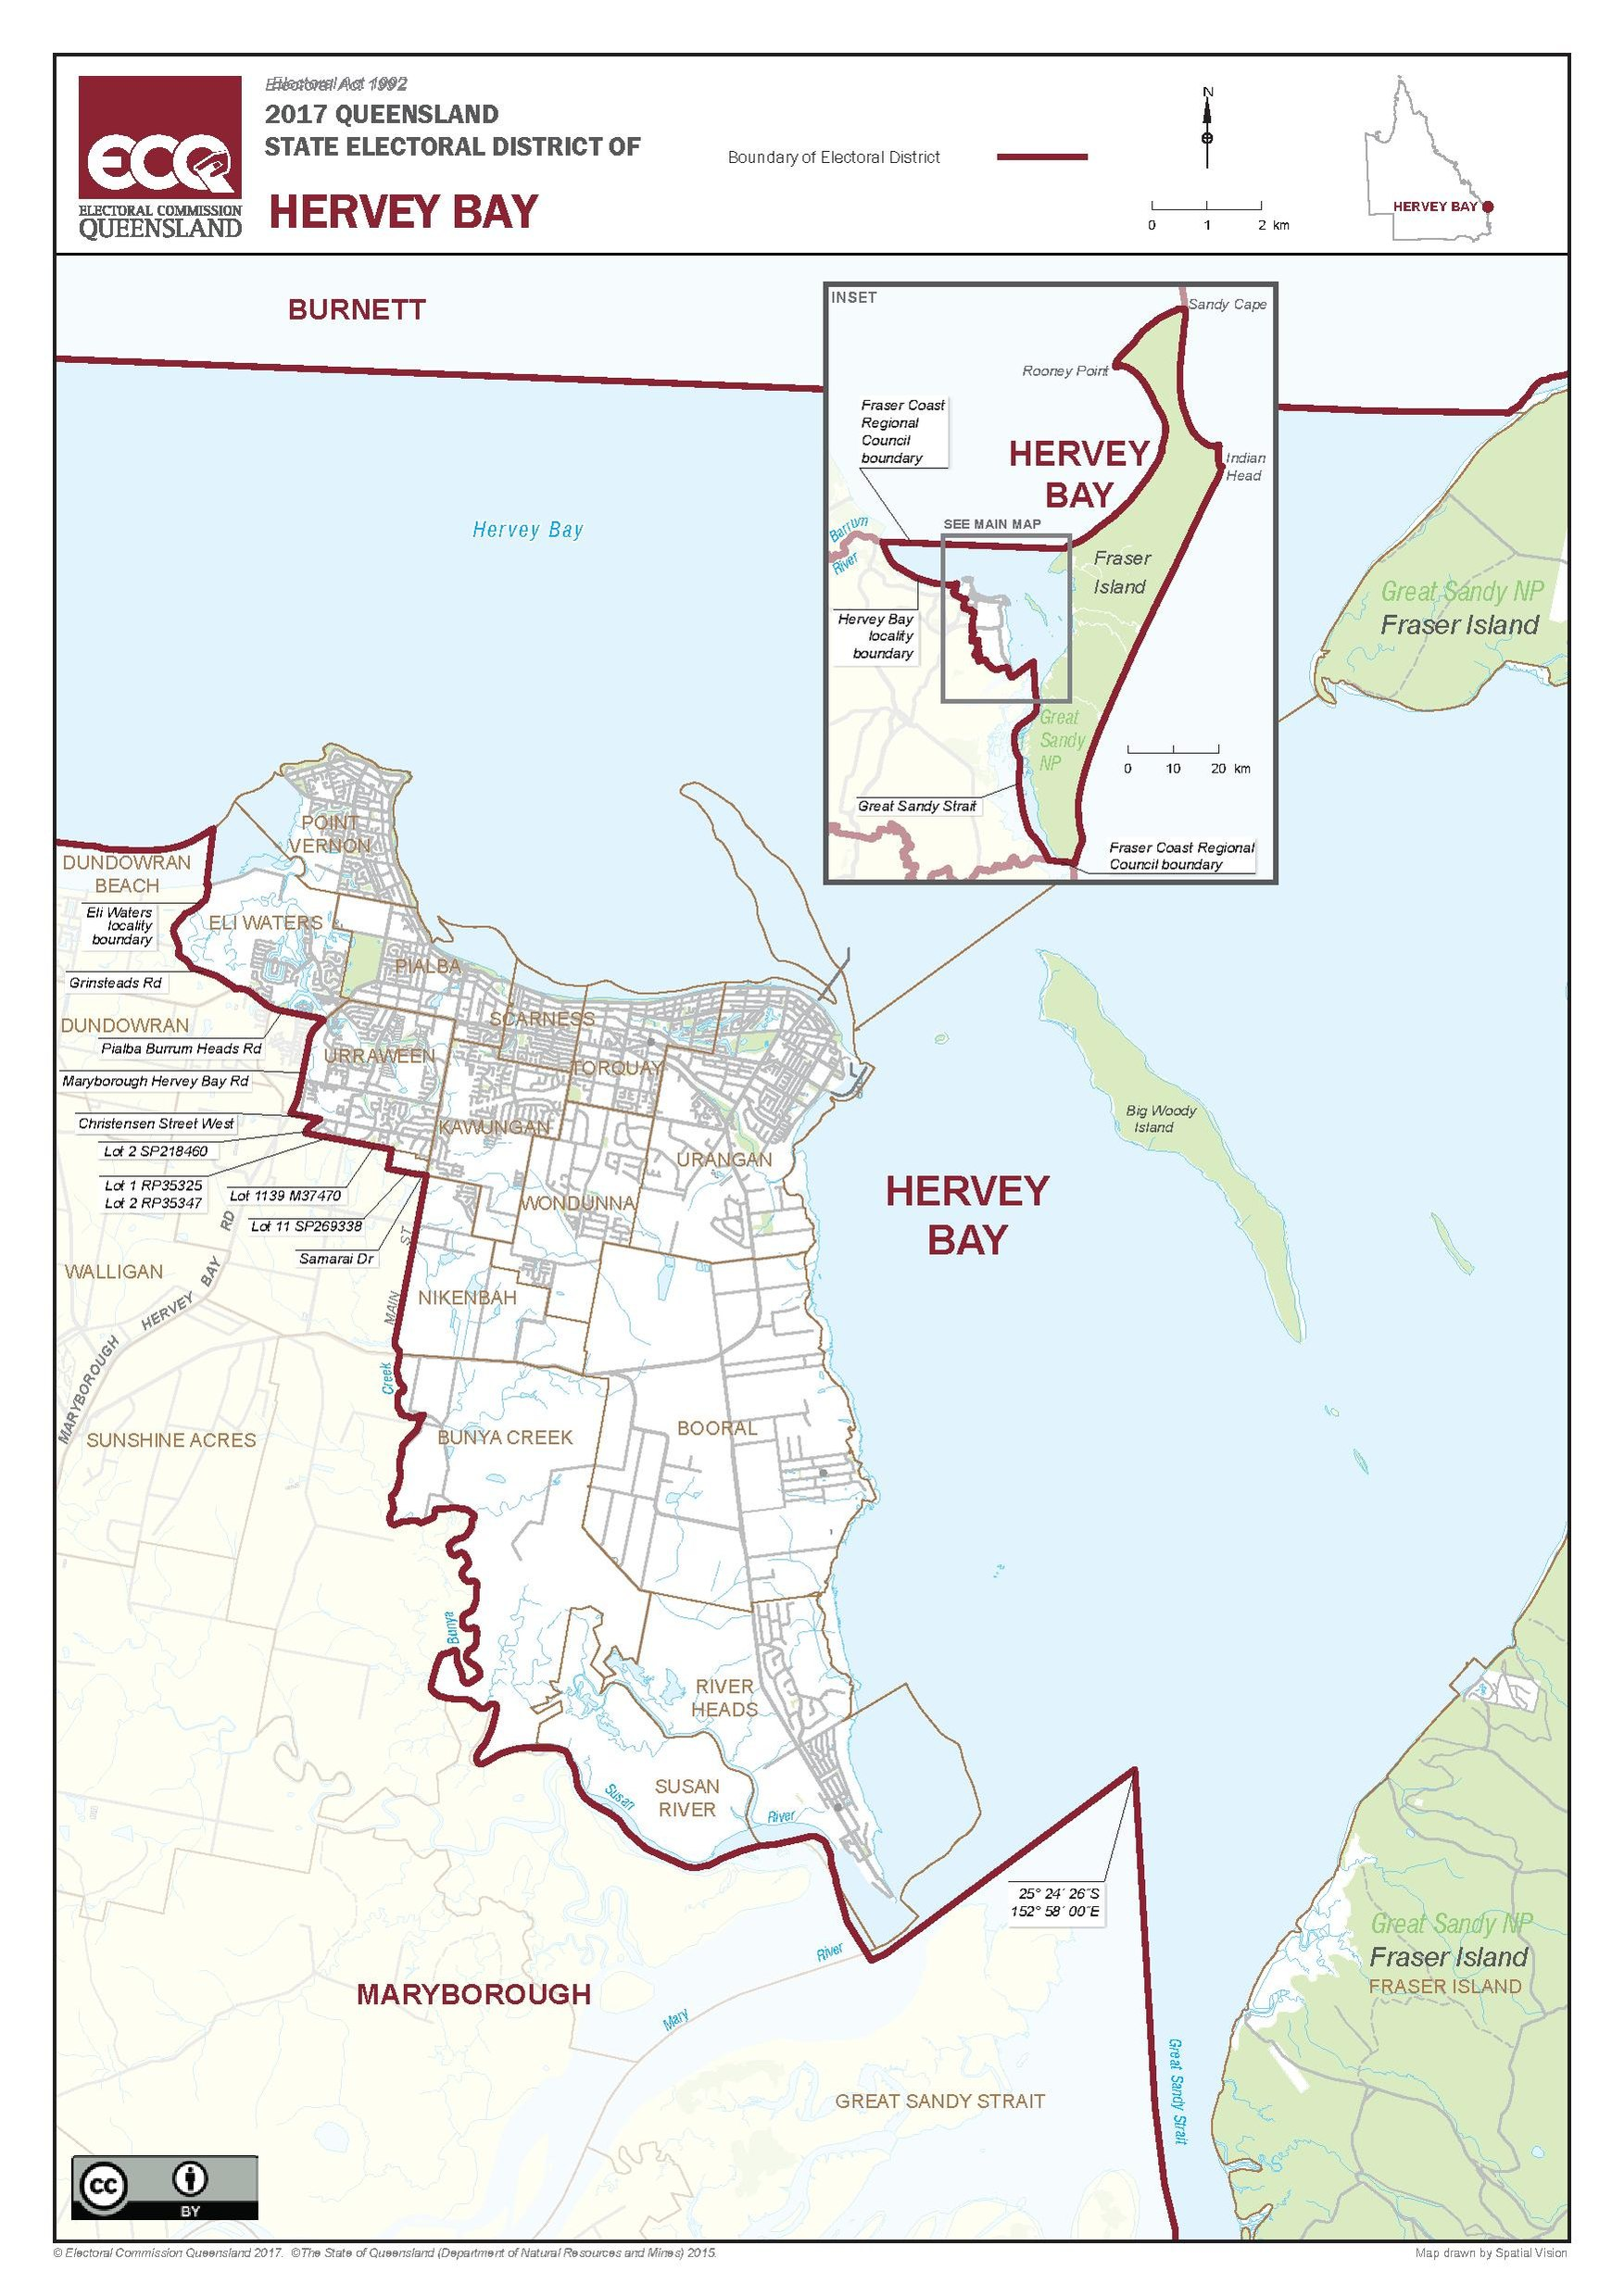 Filemap of the electoral district of hervey bay 2017pdf filemap of the electoral district of hervey bay 2017pdf gumiabroncs Choice Image